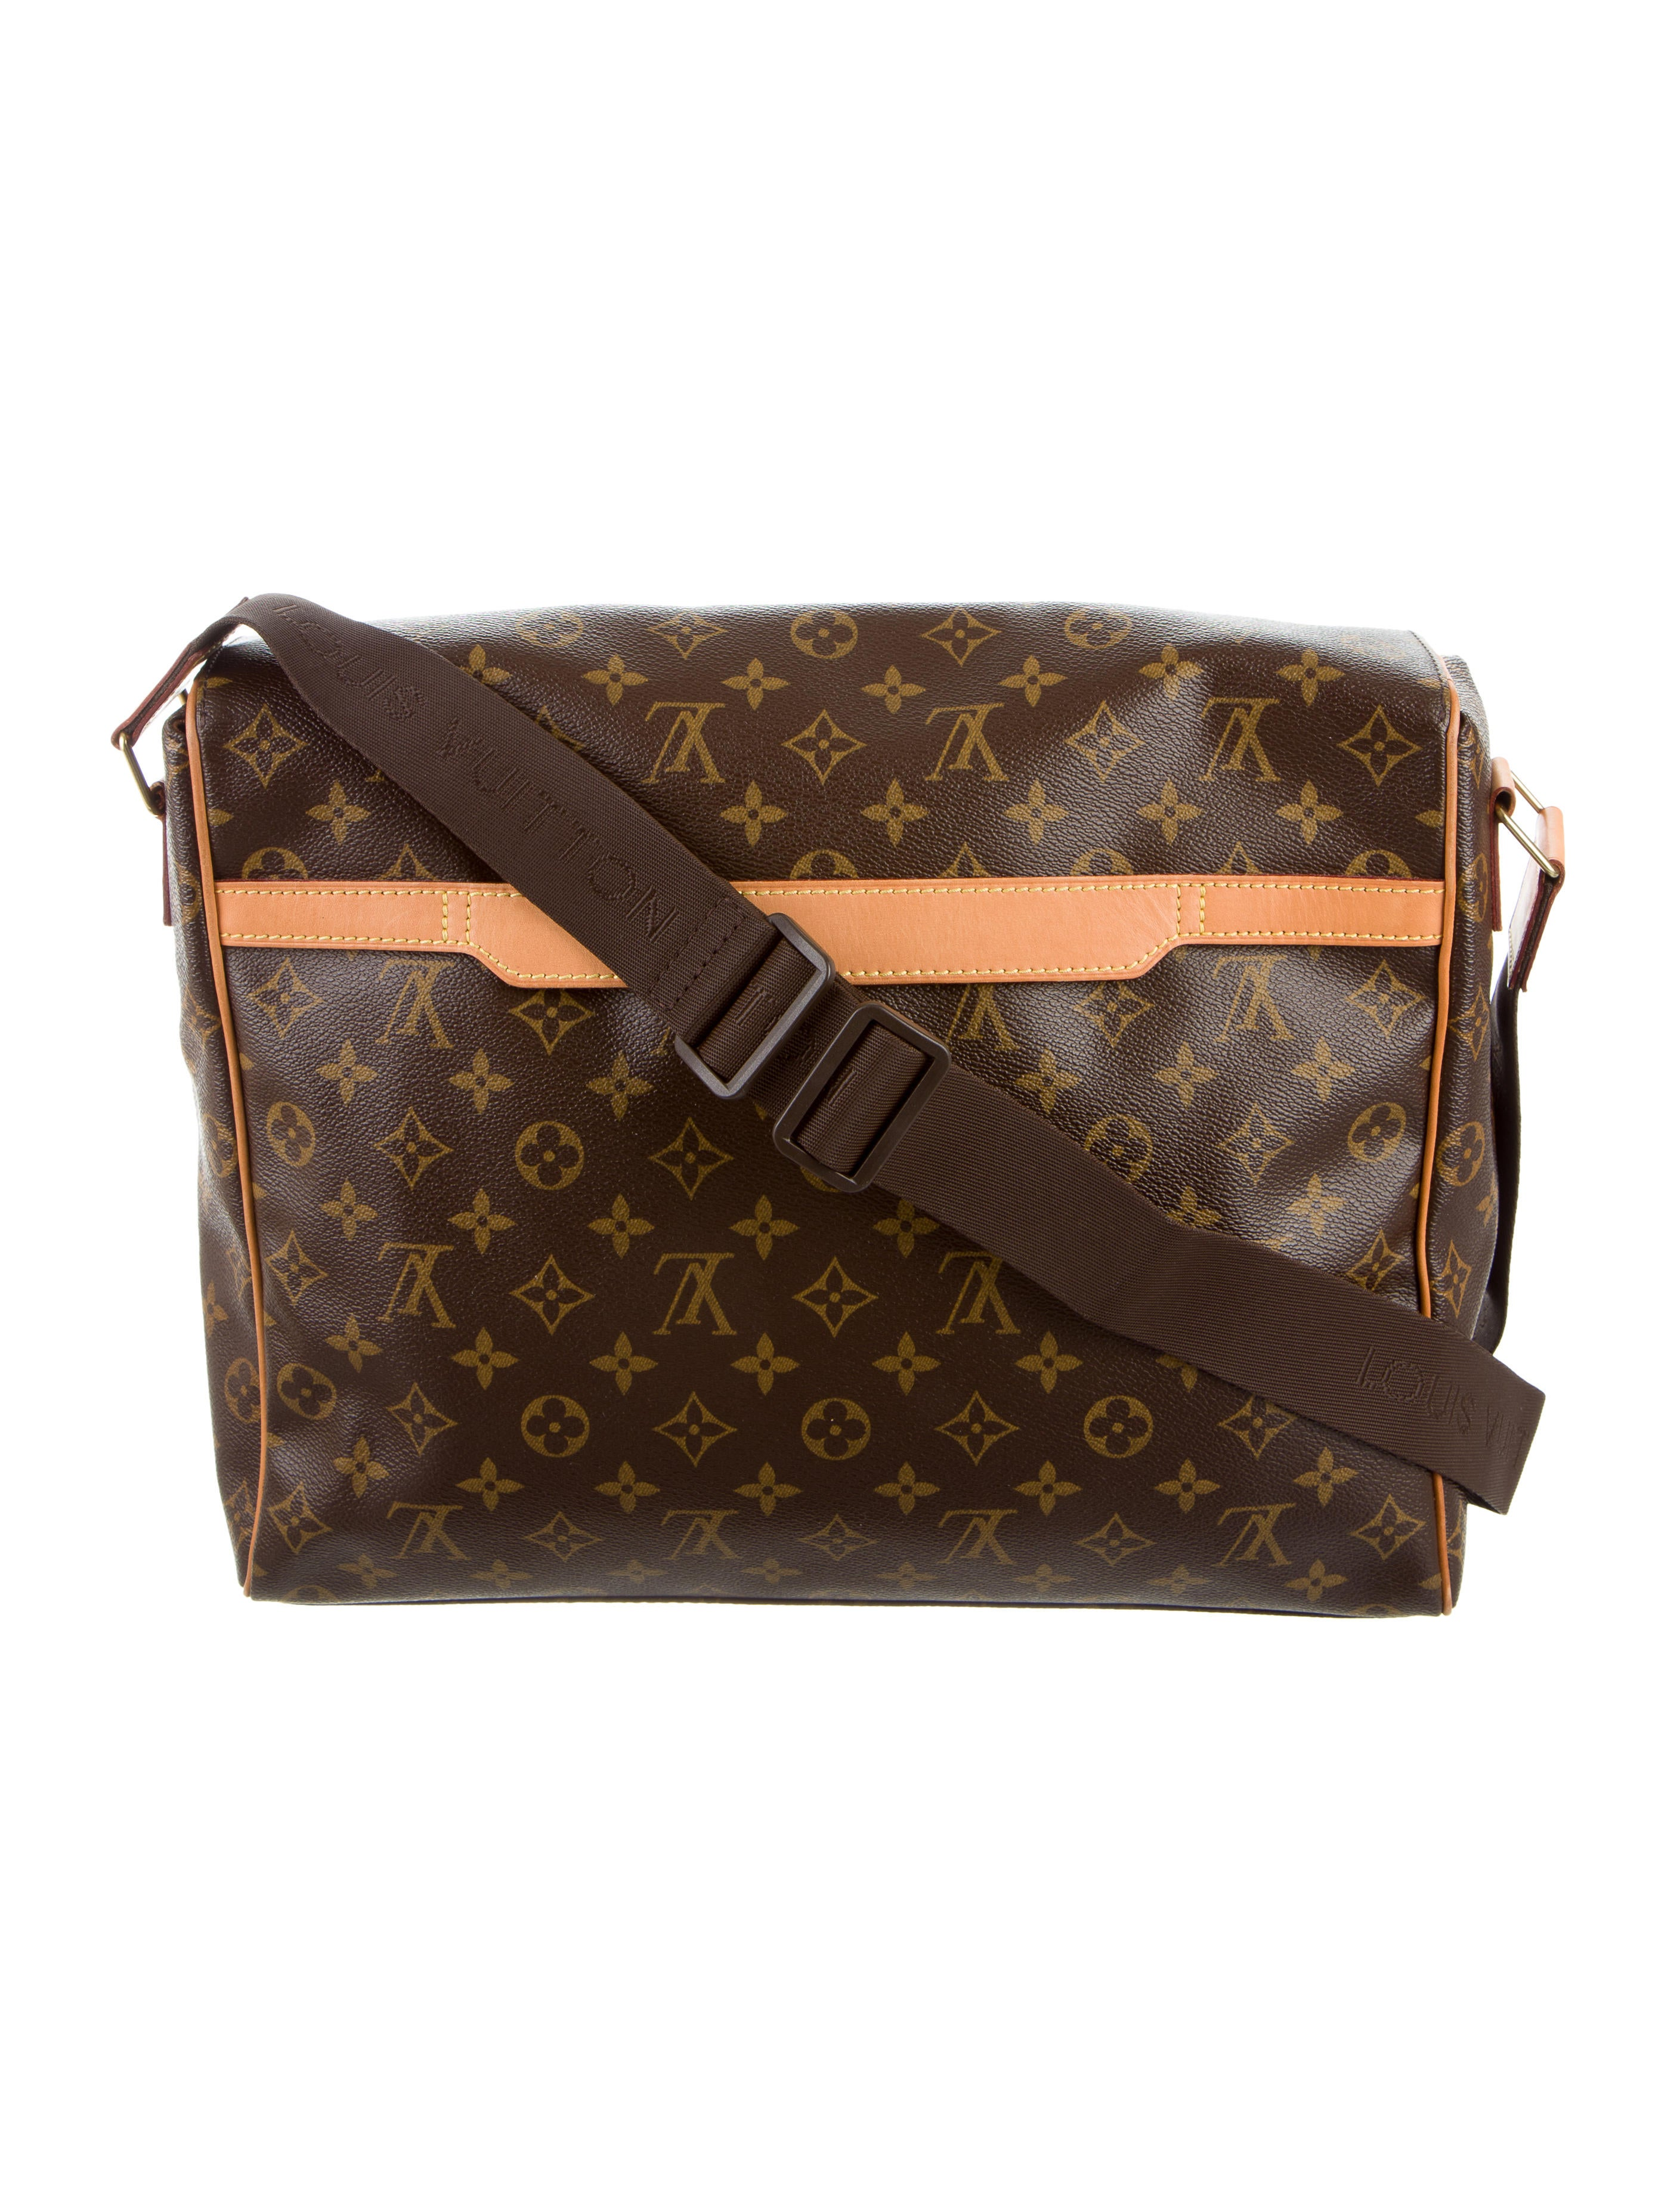 New Louis Vuitton Macassar MM Messenger Bag | EBay